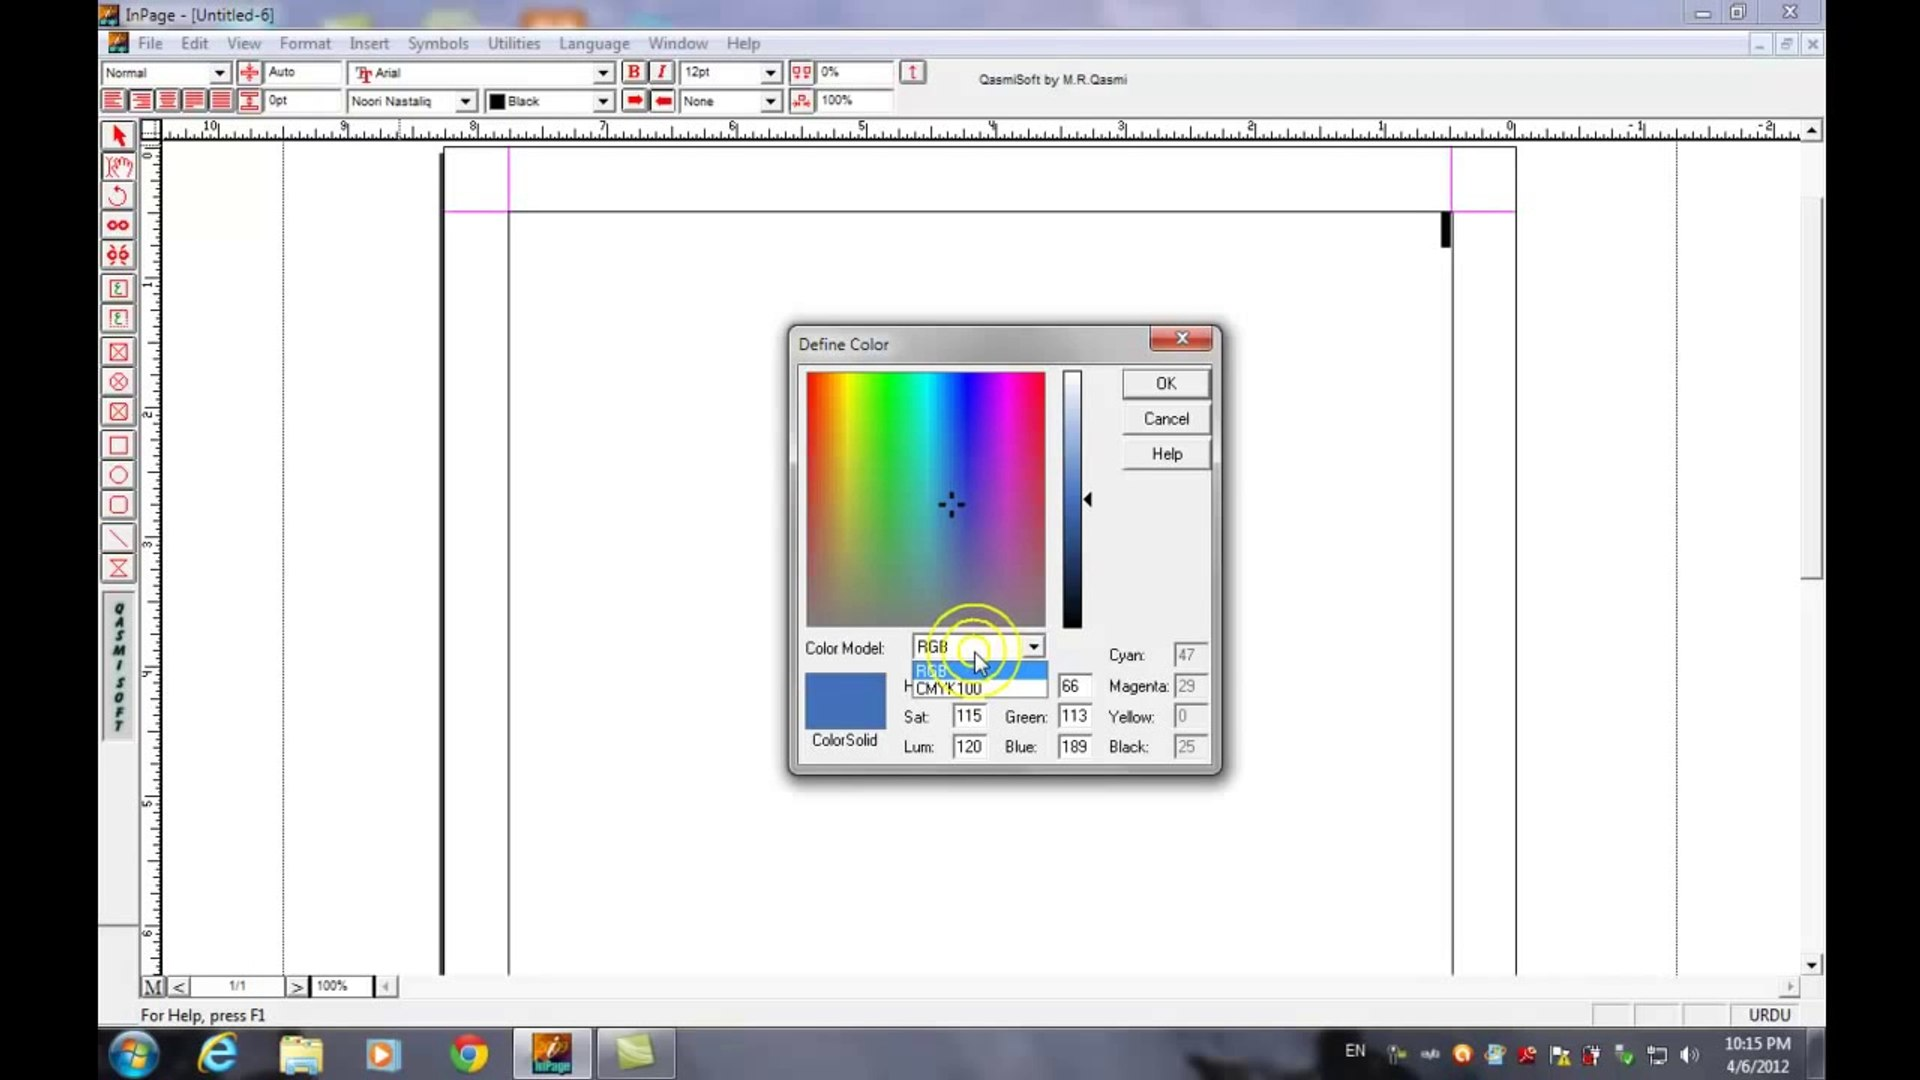 How to add new colors to Inpage 2009 Learn in Urdu, Hindi Class 12